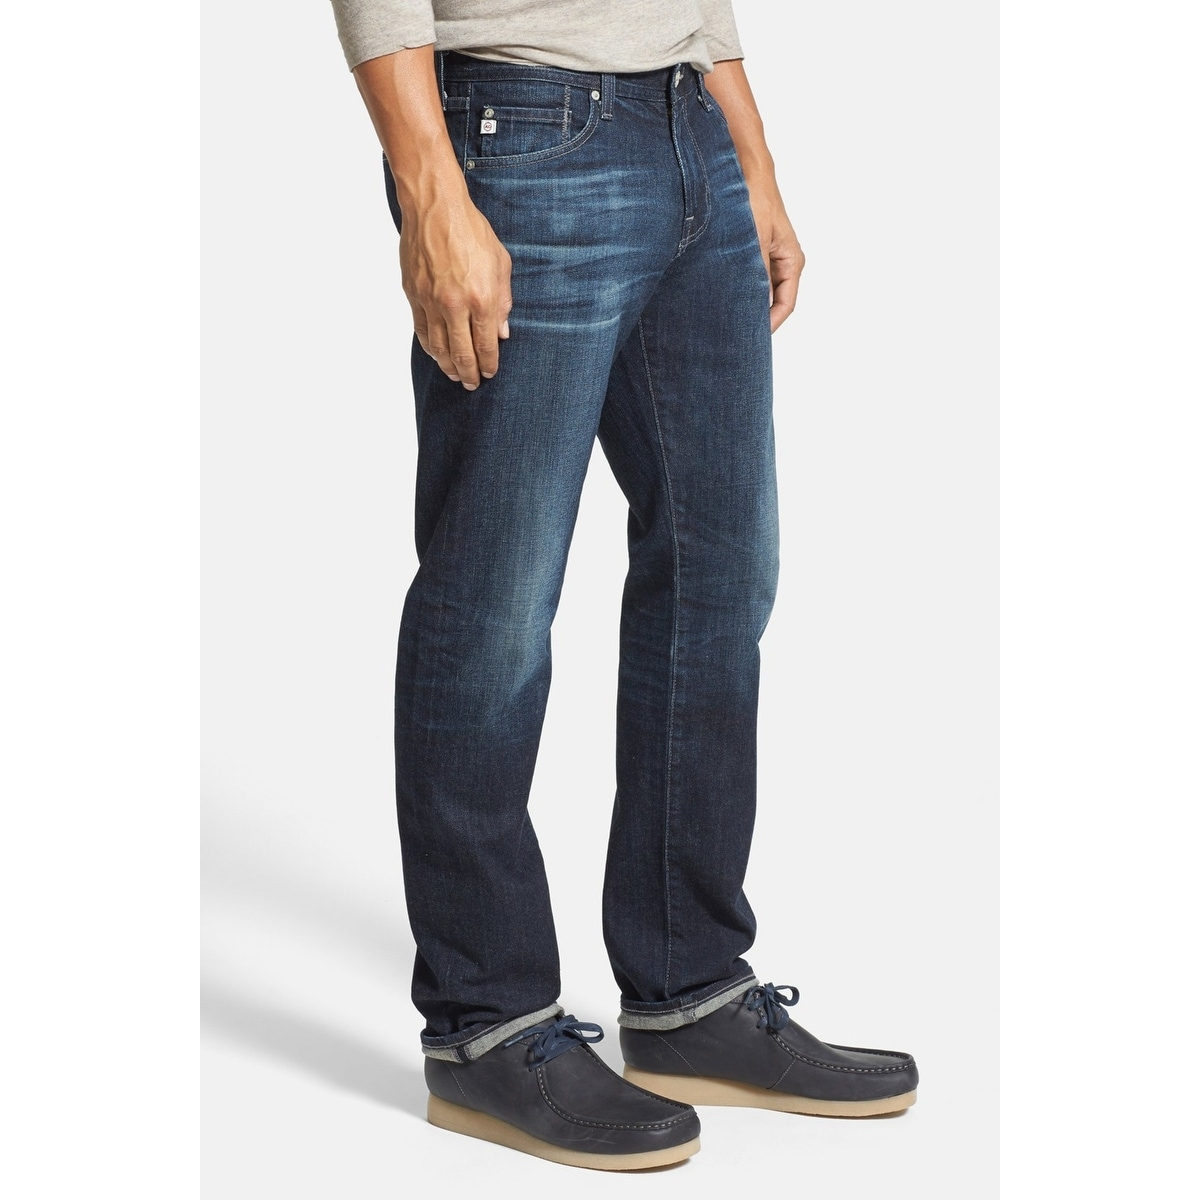 100% quality big discount of 2019 official supplier AG Mens Jeans Blue Size 34X34 The Graduate Straight Tailored-Leg